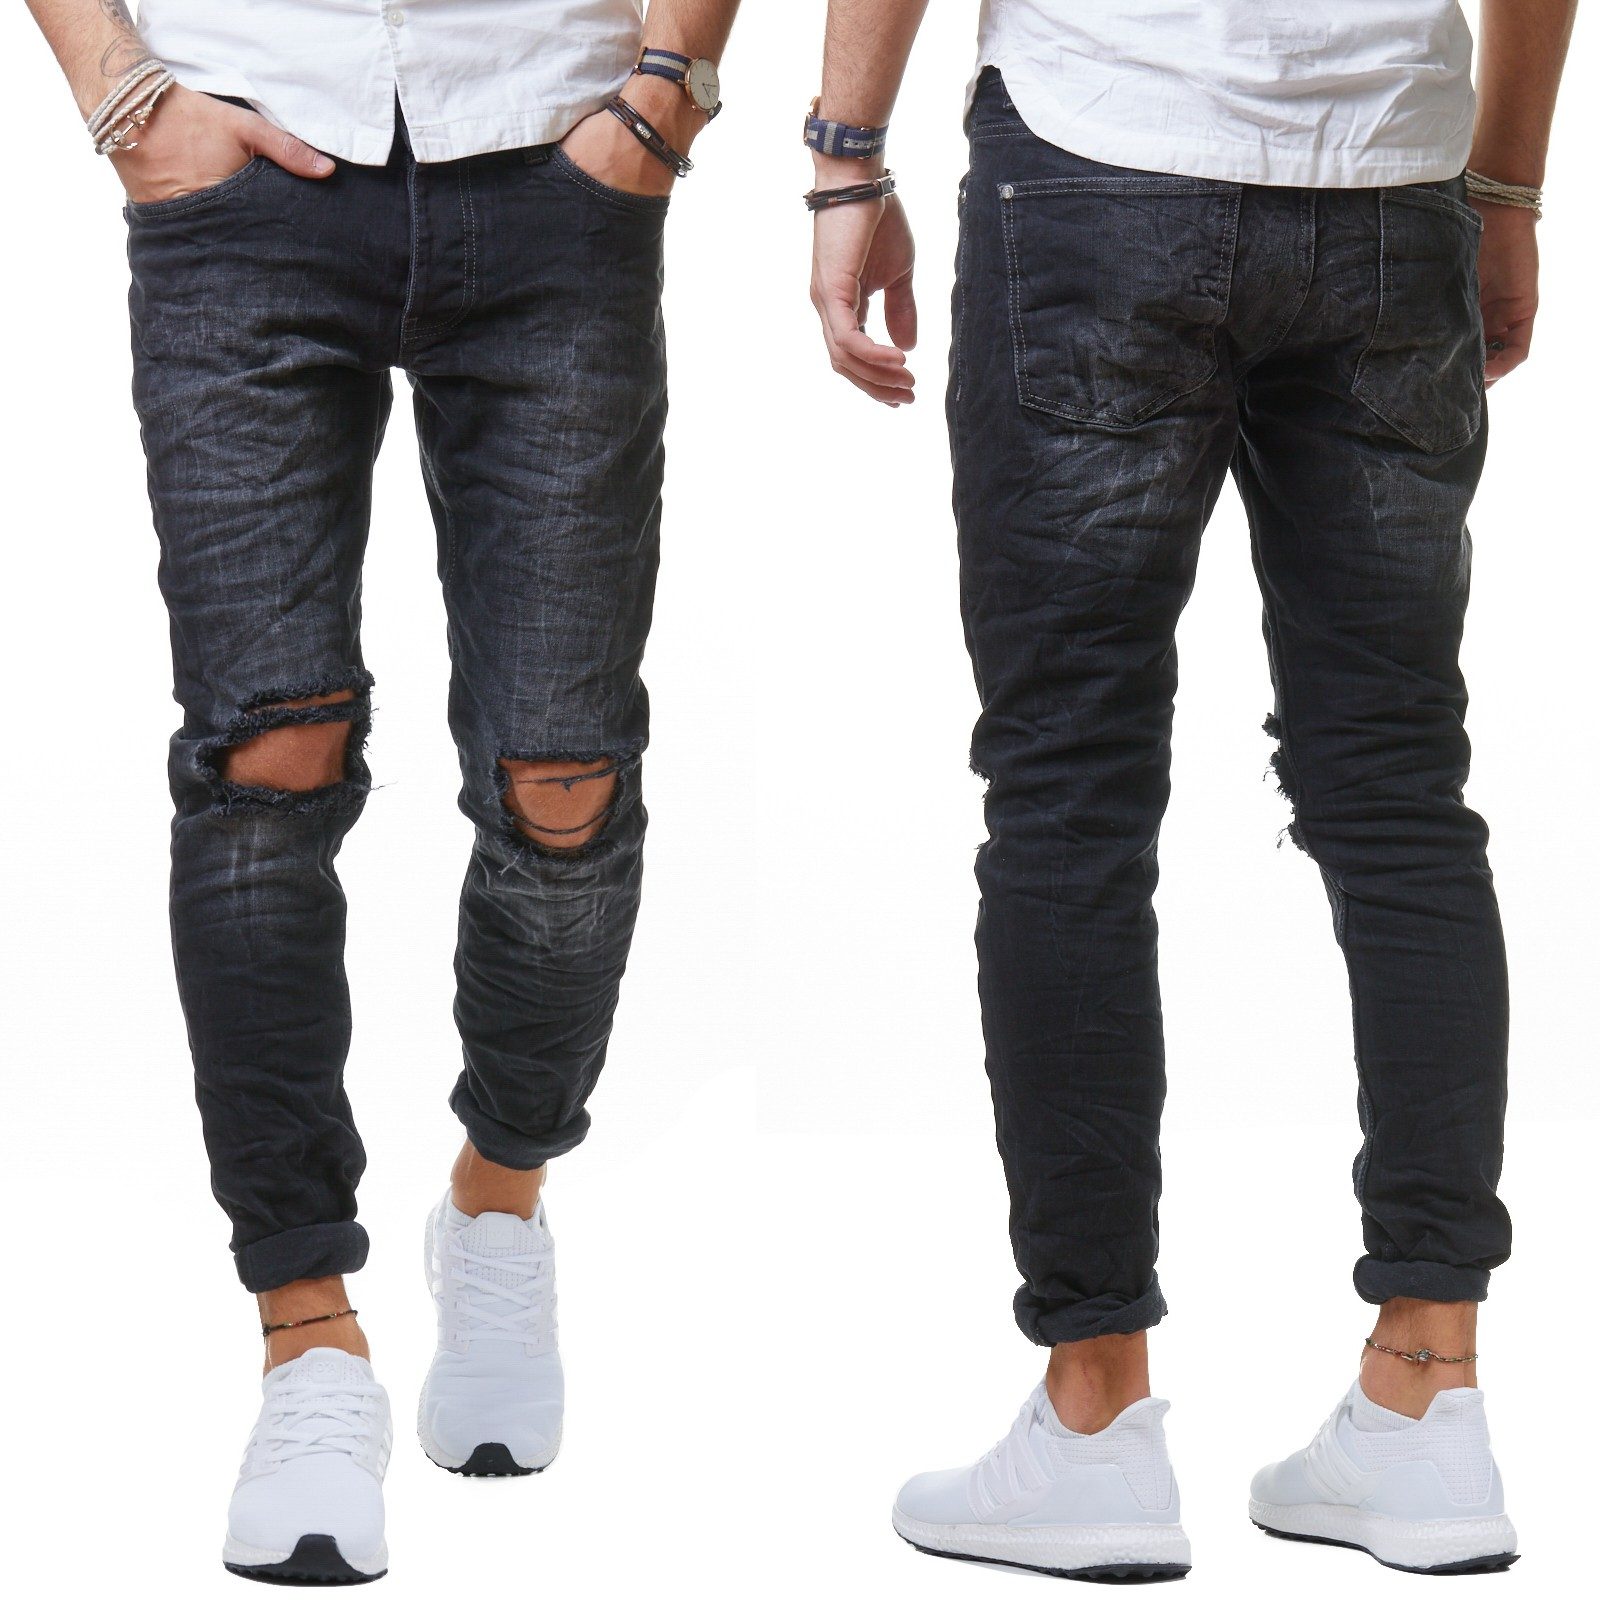 redbridge 4098 herren jeans hose denim slim fit zerrissen. Black Bedroom Furniture Sets. Home Design Ideas